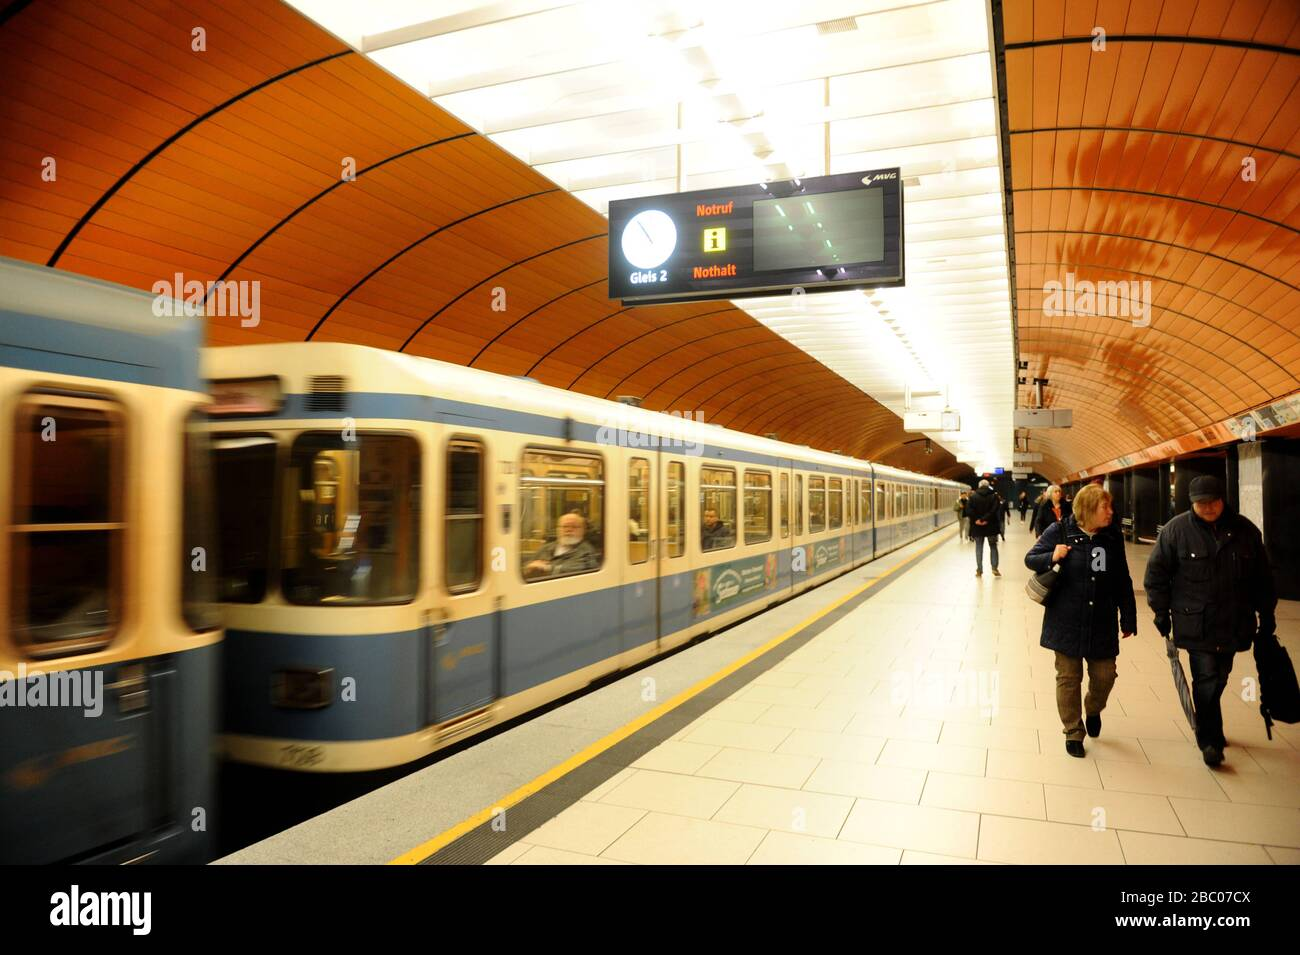 Effects of the corona virus: the tunnels and corridors of the Munich subway are almost empty. [automated translation] Stock Photo